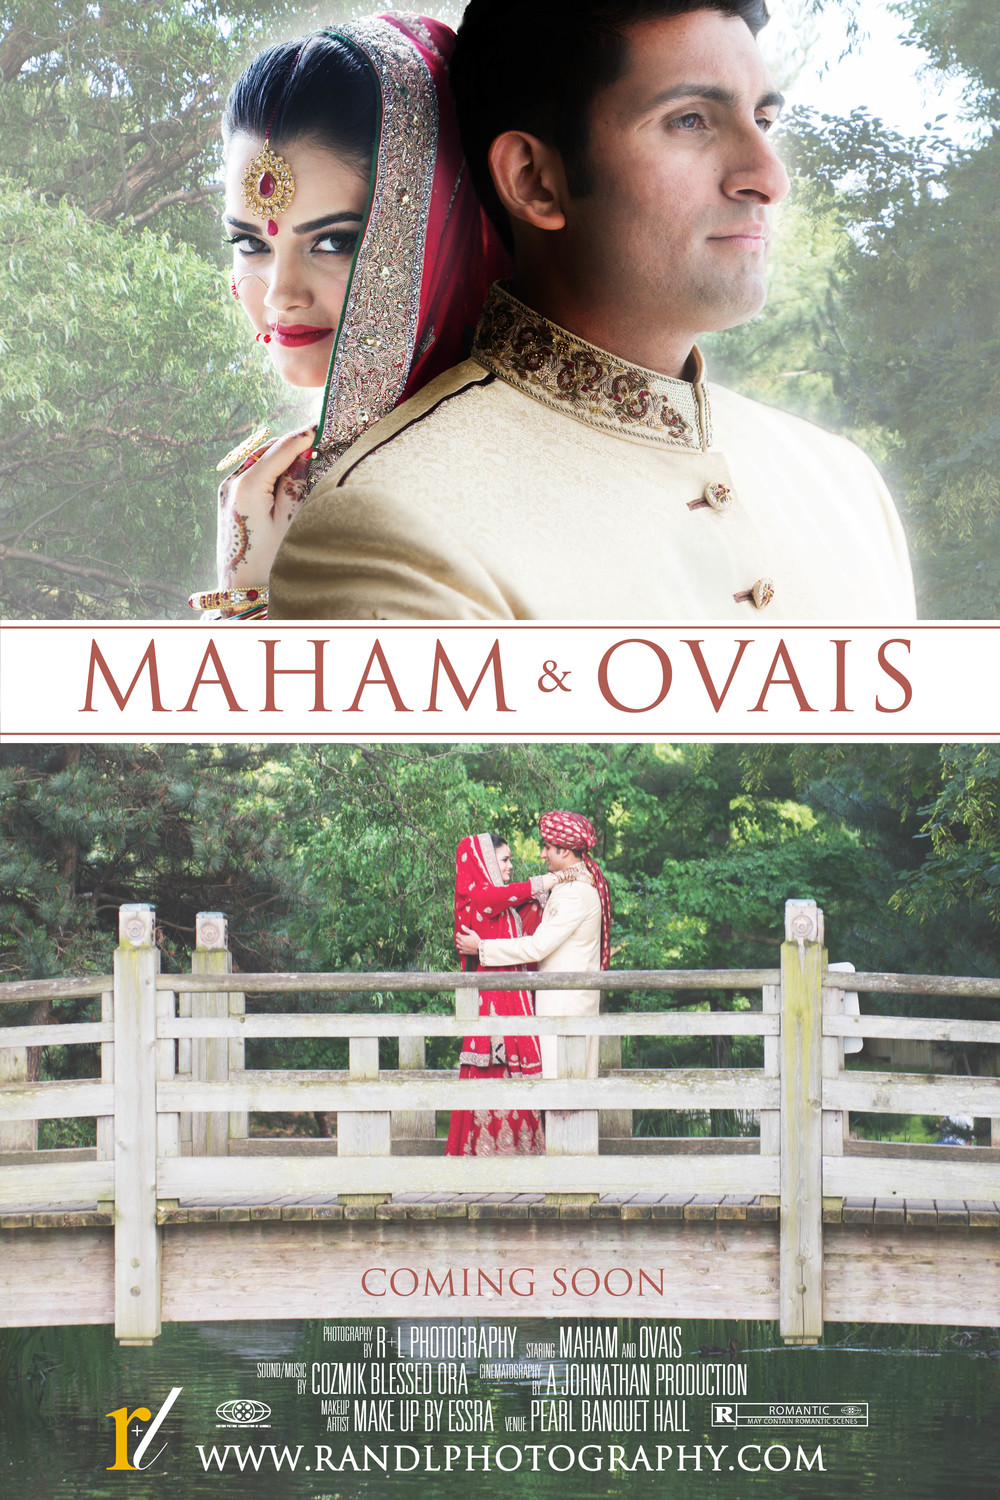 Maham + Ovais Wedding Poster